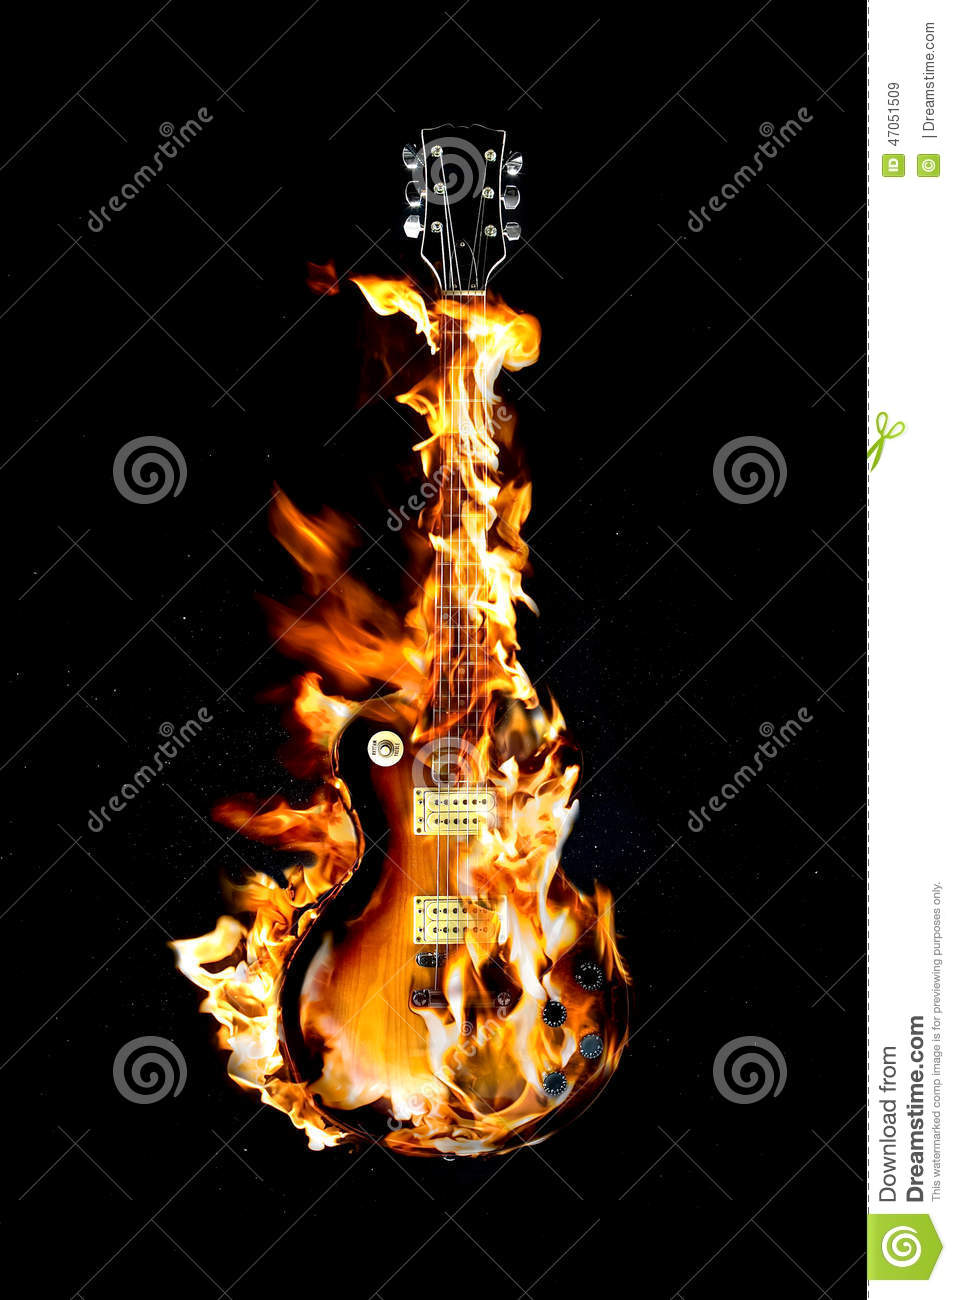 Flaming Guitar Stock Image Of Melting Knob Fire